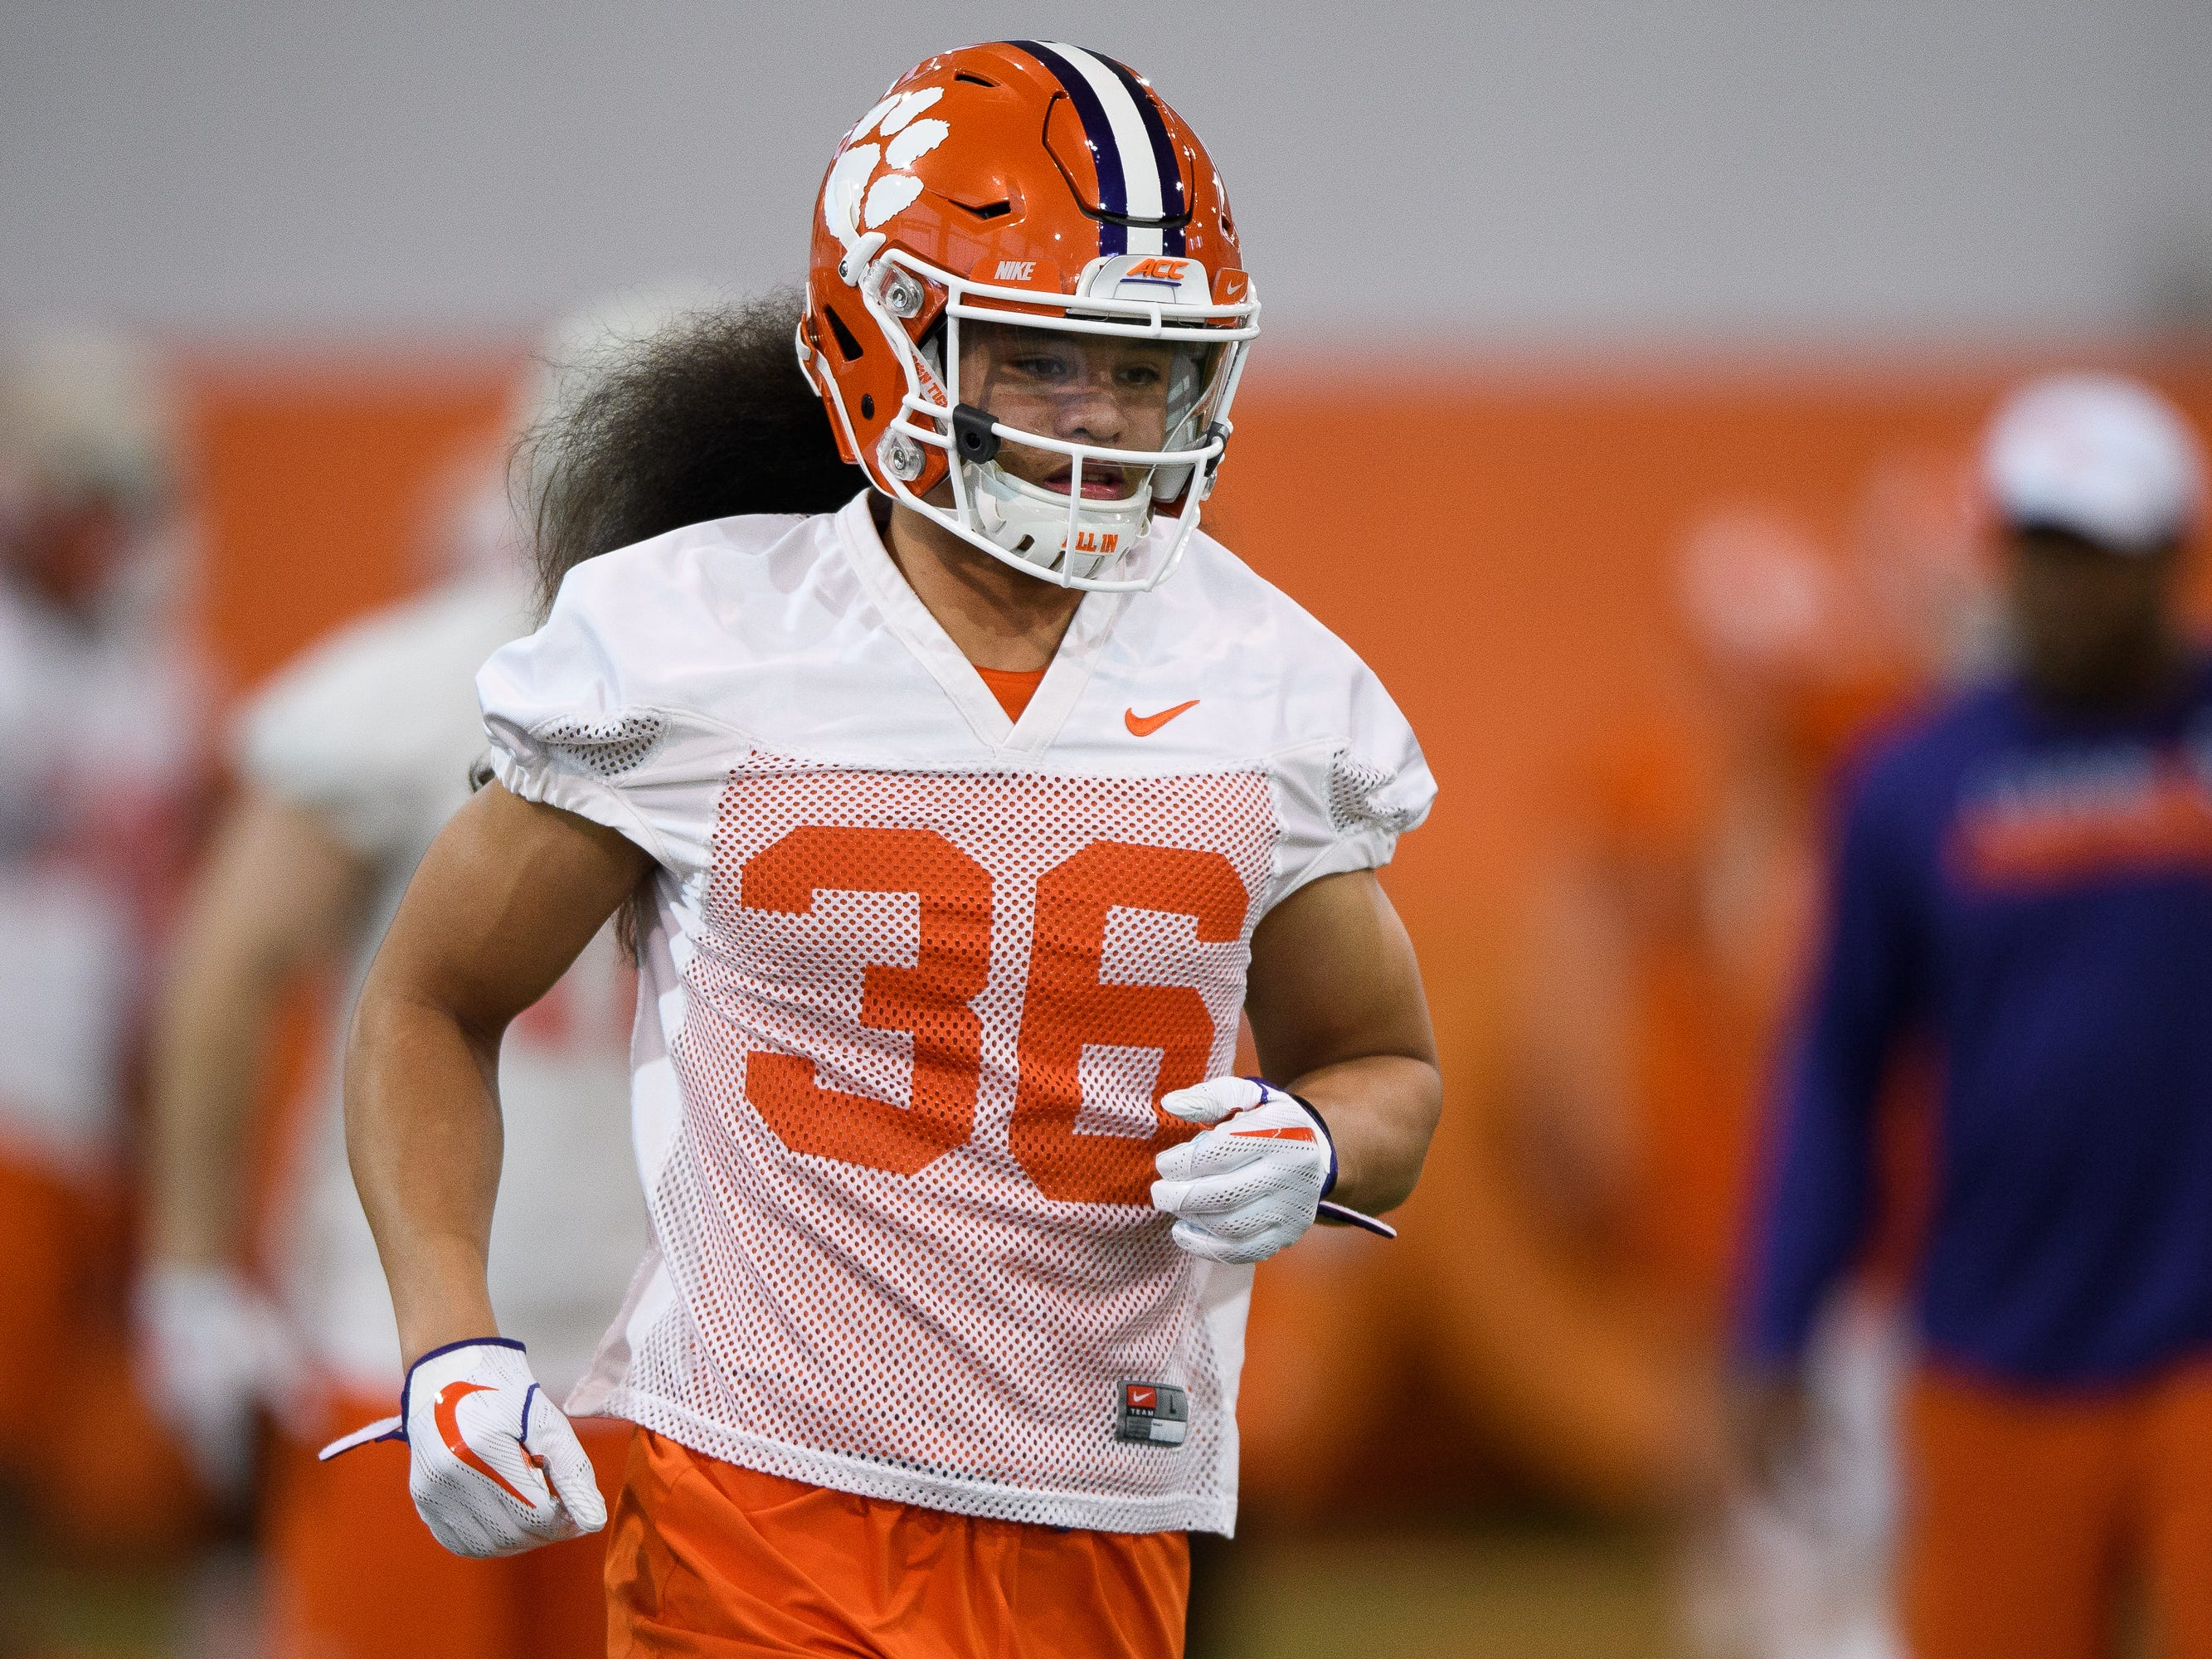 Clemson defensive back Lannden Zanders (36) runs during practice at the Allen Reeves Football Complex on Wednesday, Feb. 27, 2019.